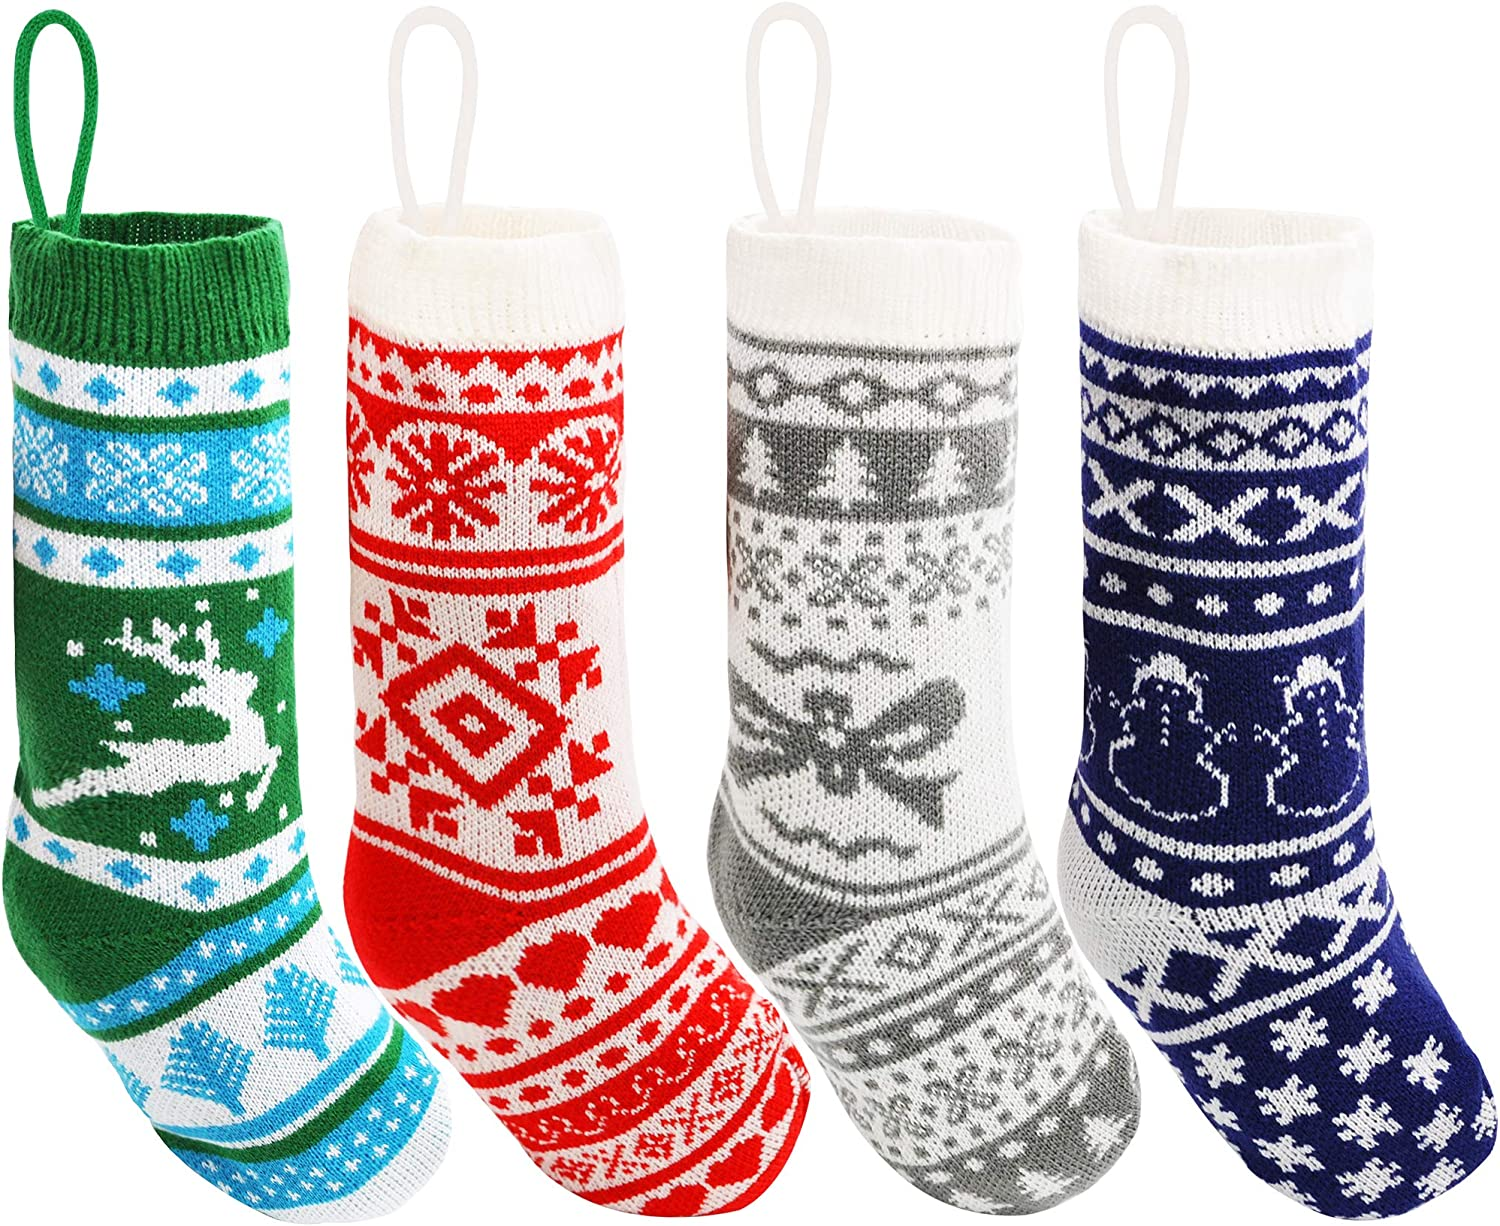 """Large Size Rustic Cable Knit Xmas Stocking in Multicolored Joiedomi 18/"""" Christmas Stockings 4 Pcs for Family Holiday Season Decorations"""